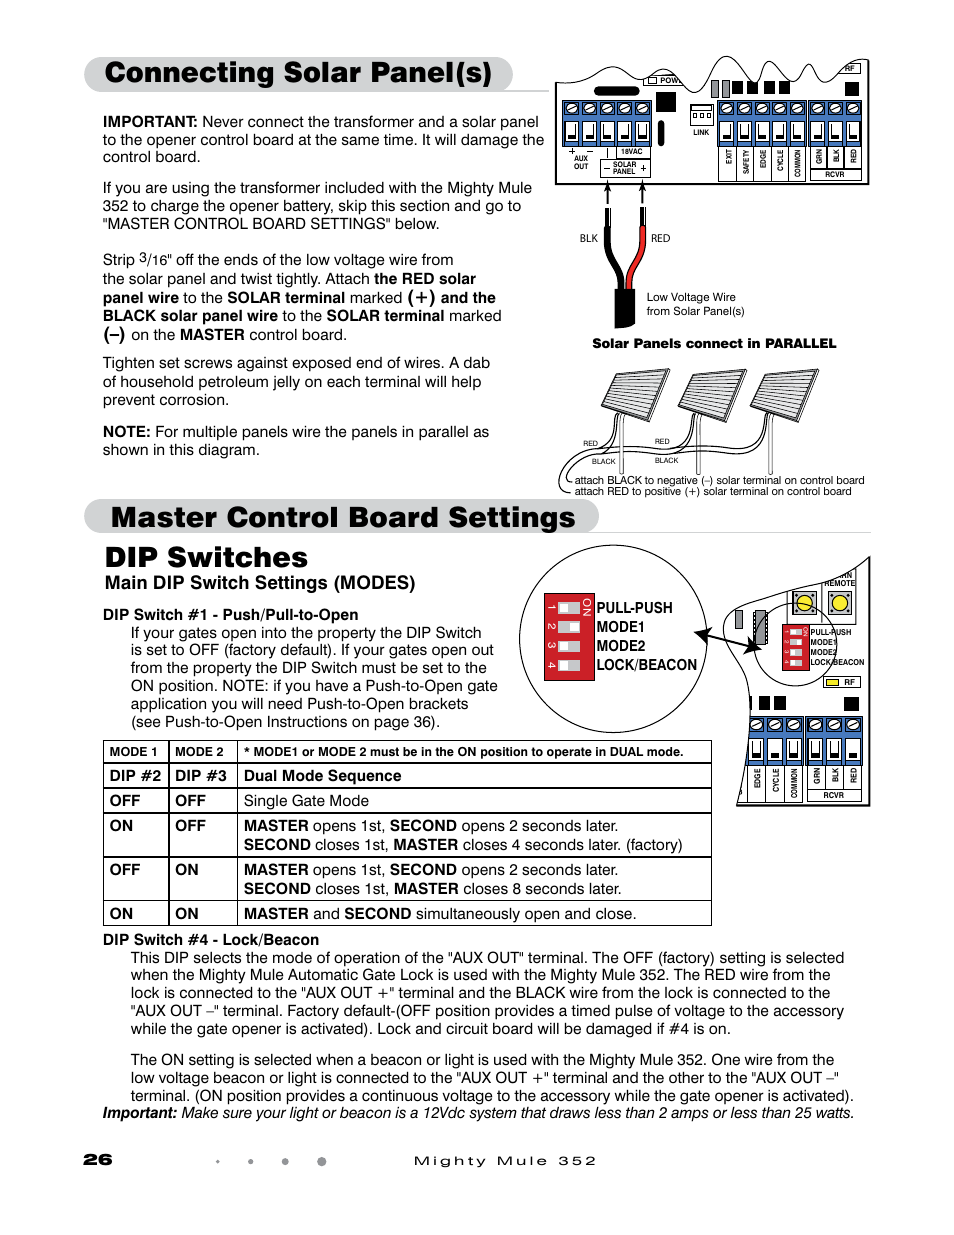 Dip Switches Main Dip Switch Settings Modes Pull Push